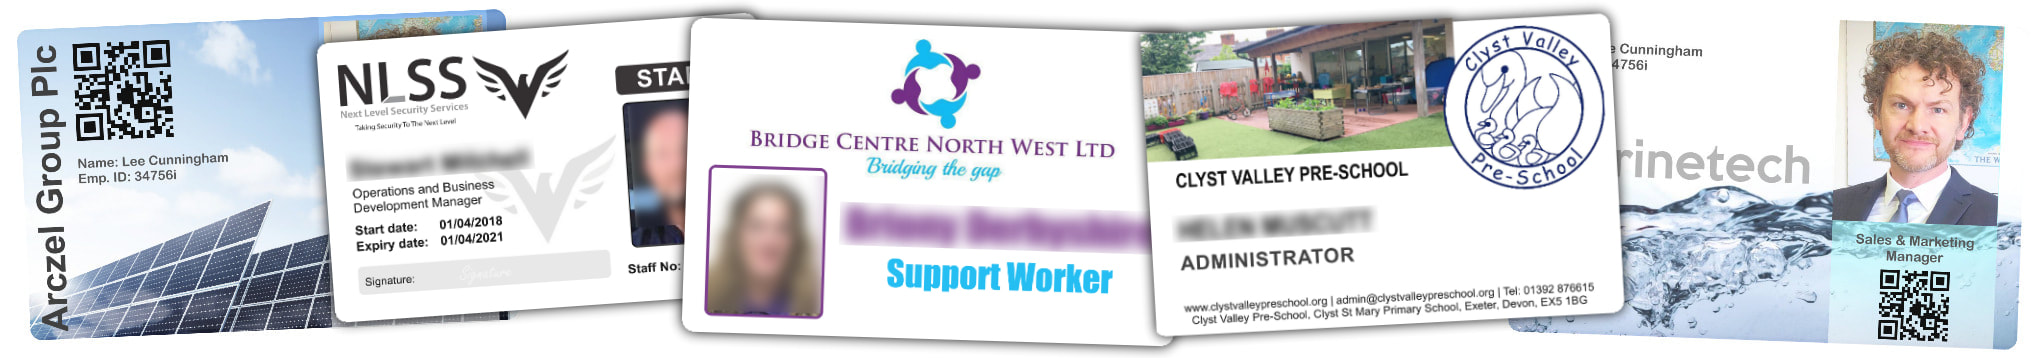 Stockton-on-Tees​ examples of staff photo ID cards | samples of employee Identity card printing | Workers ID cards printed in